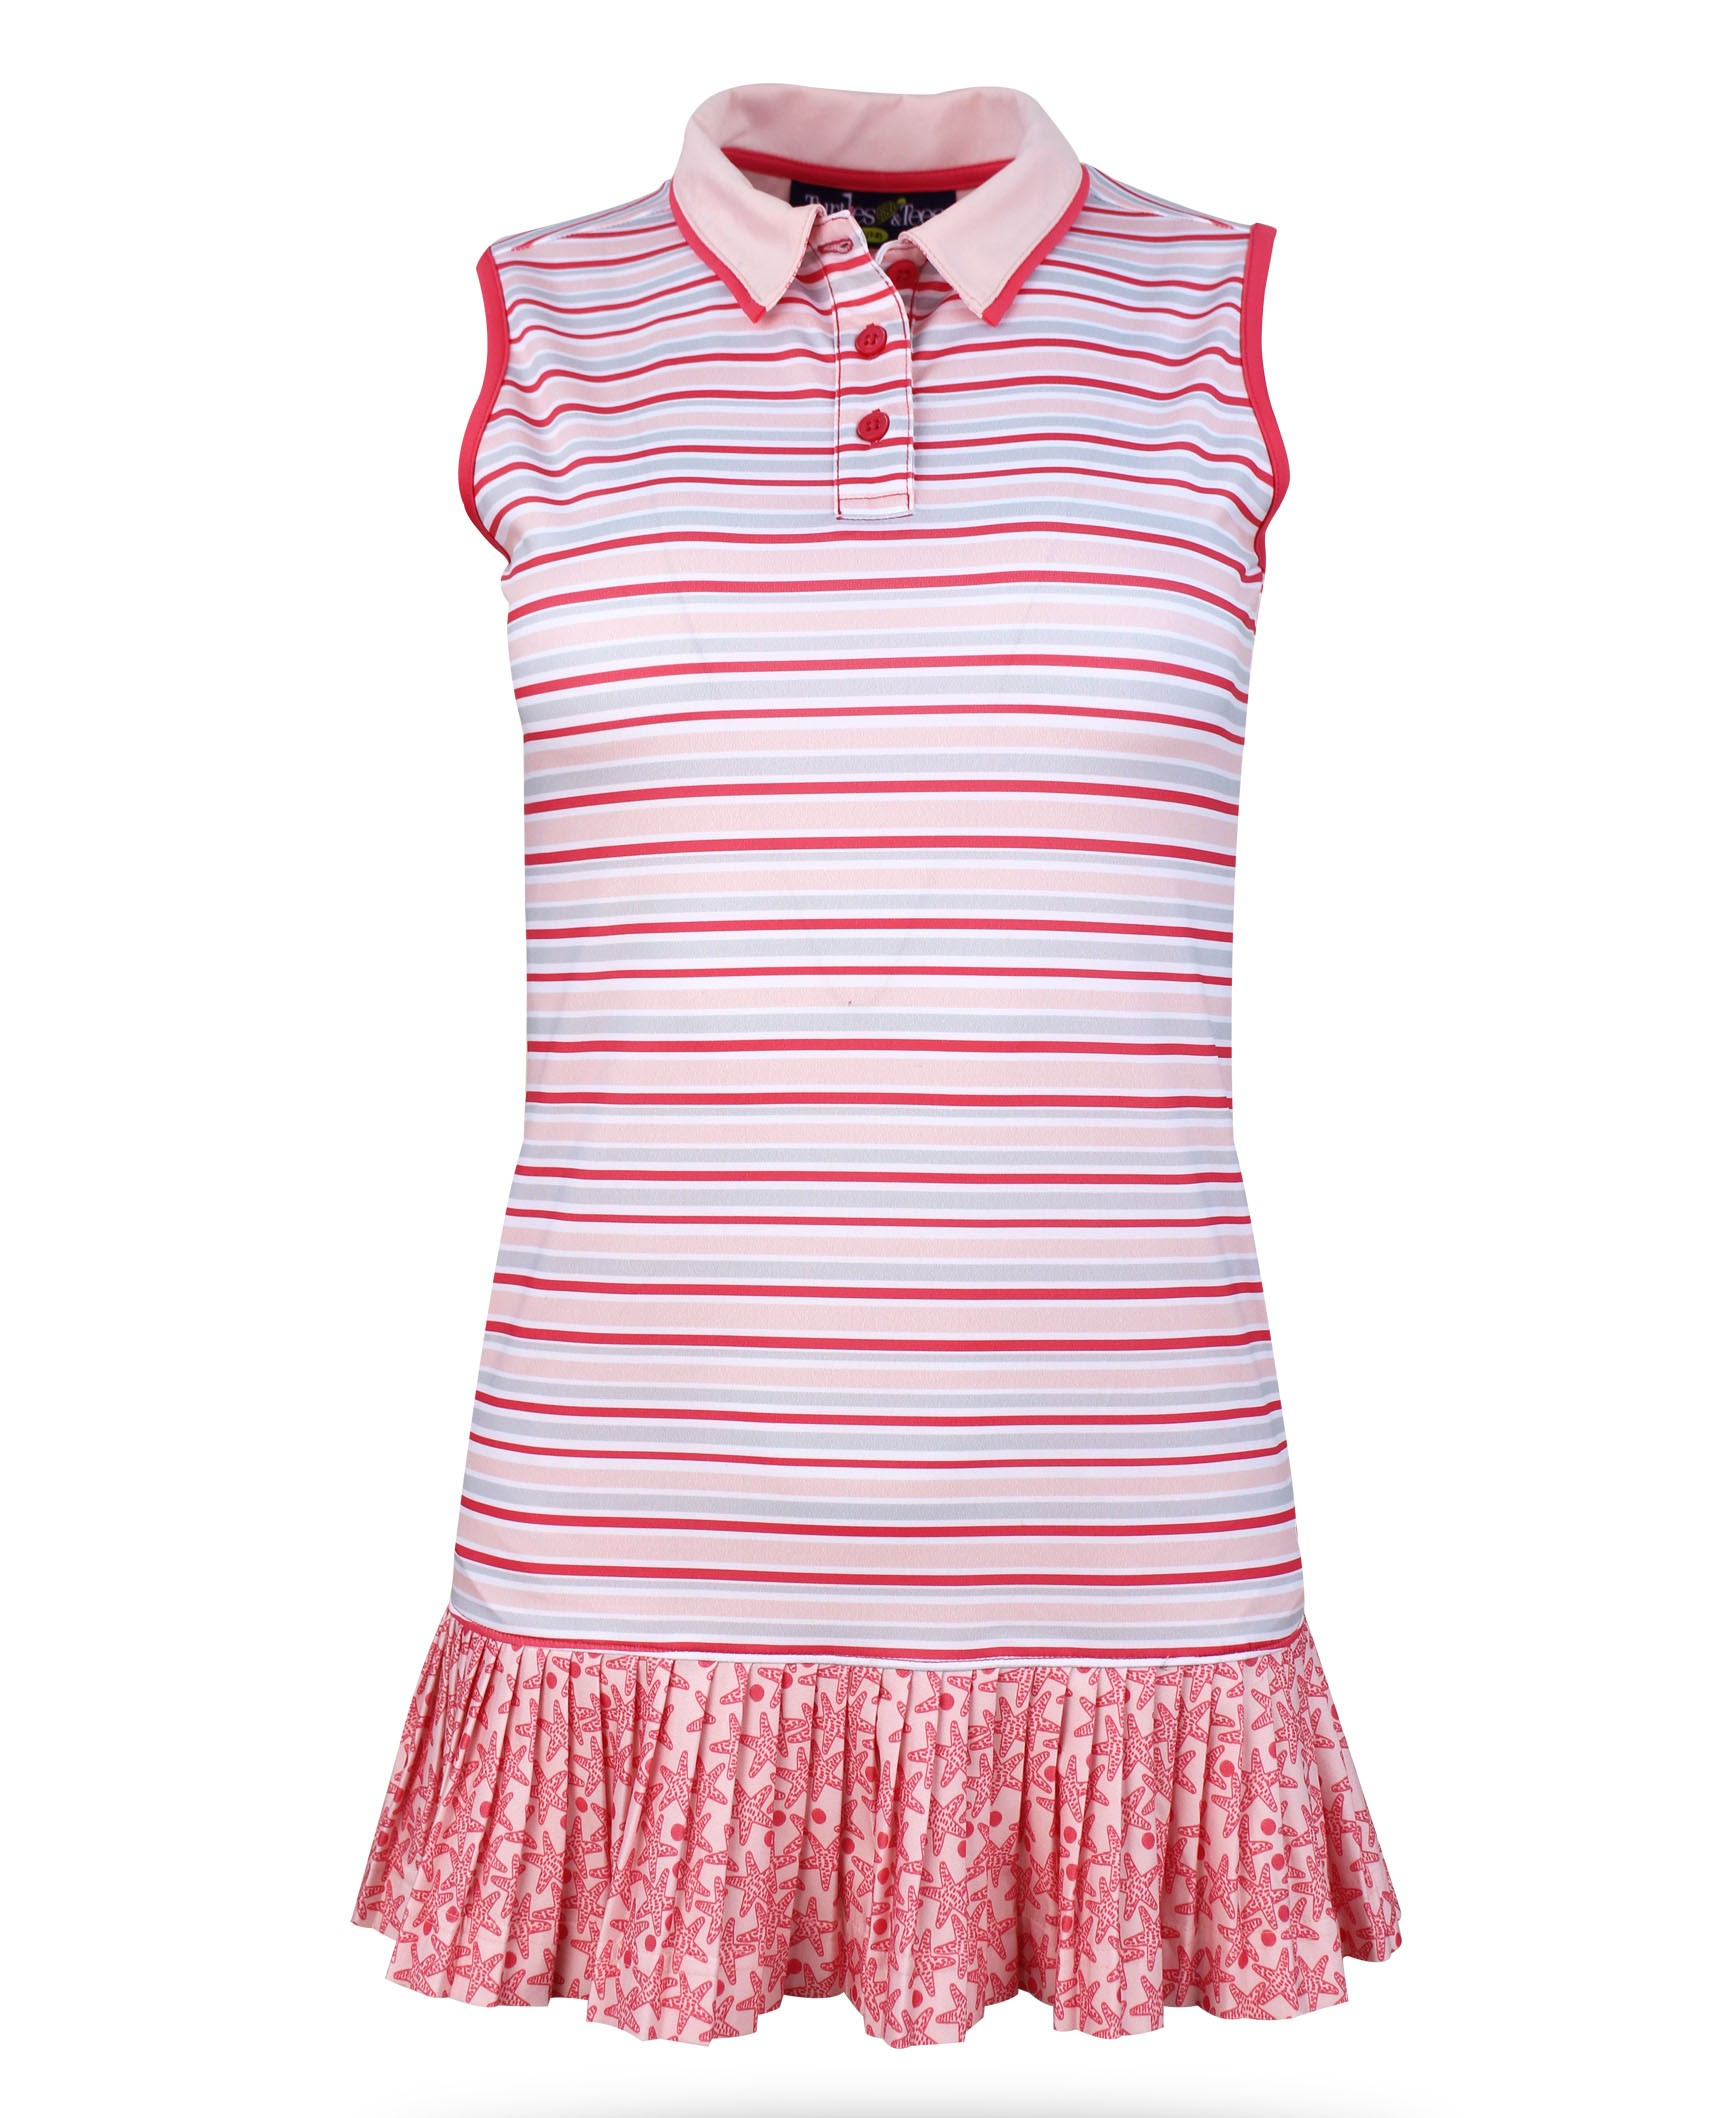 Kaye Ann Girl's Short Sleeve Golf and Tennis Dress in Pink Stripe Print w/Coordinating spandex shorts